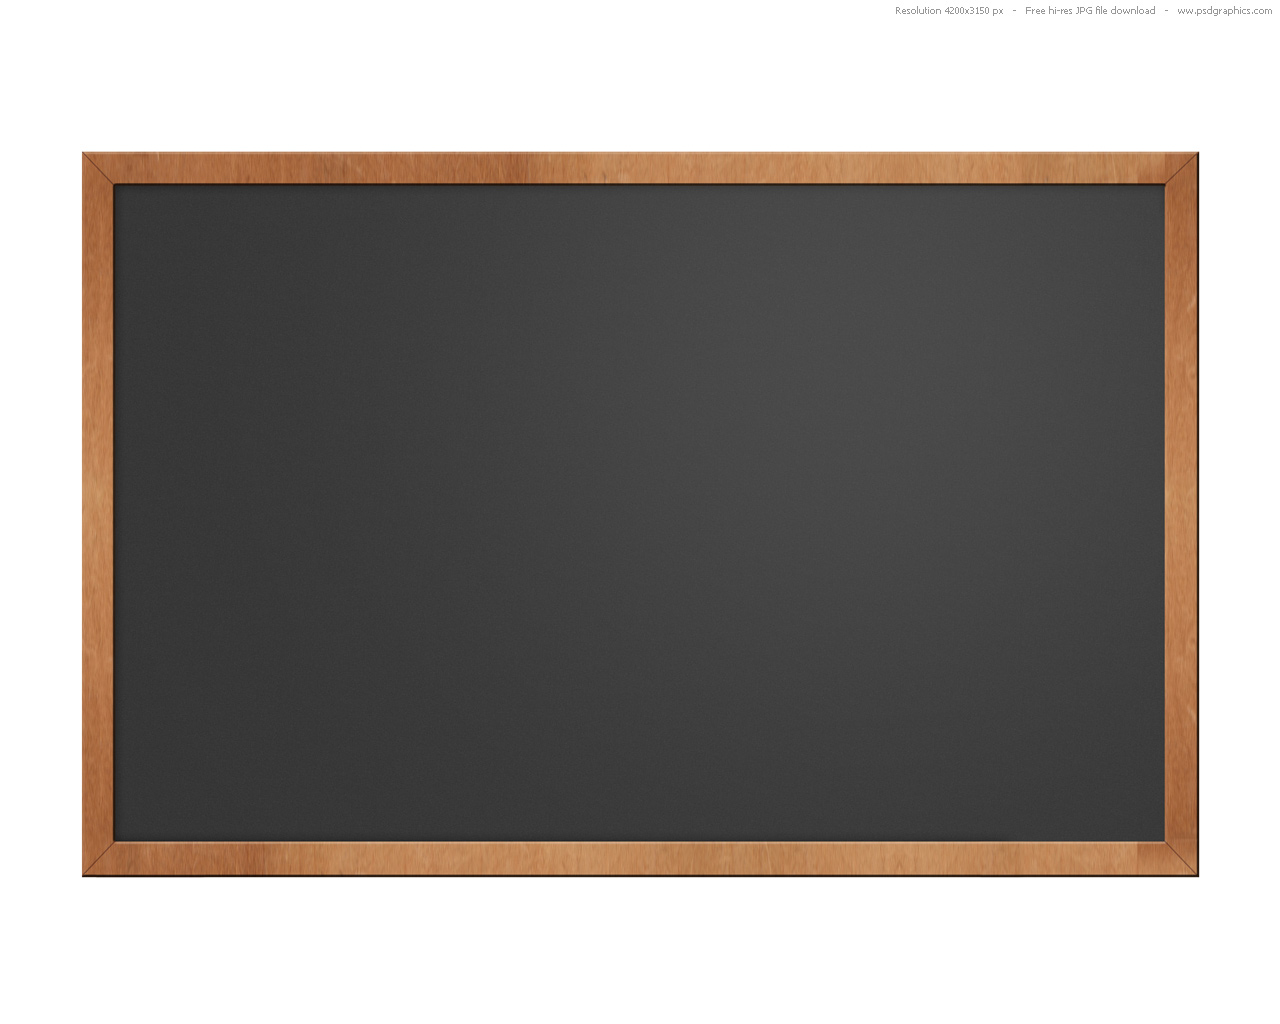 Green and black blackboards (chalkboards) set | PSDGraphics